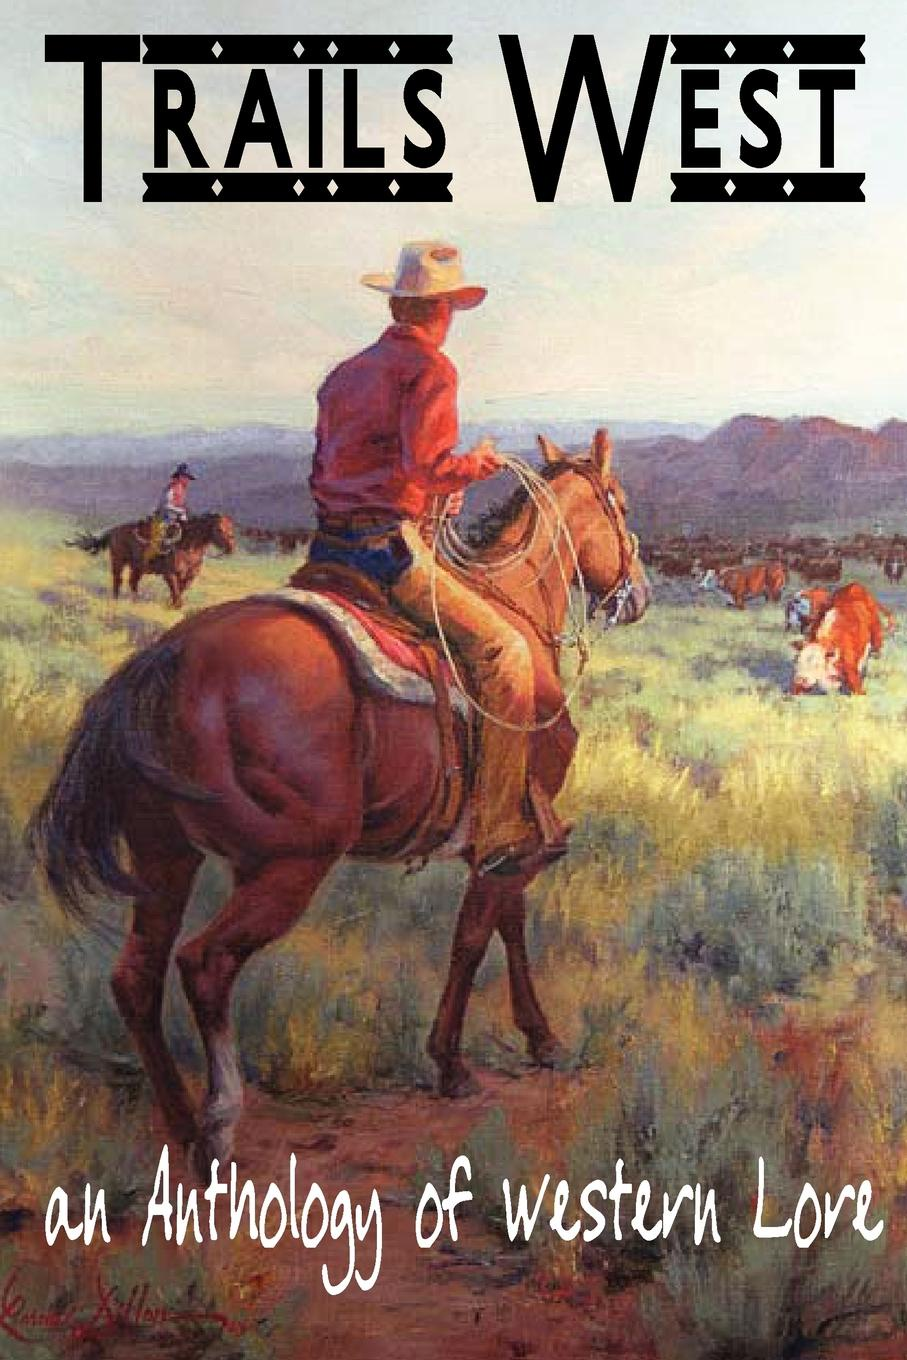 Herb Marlow, Jim Kennison, Dave P. Fisher TRAILS WEST...an Anthology of Western Lore rice alfred ernest an oregon girl a tale of american life in the new west